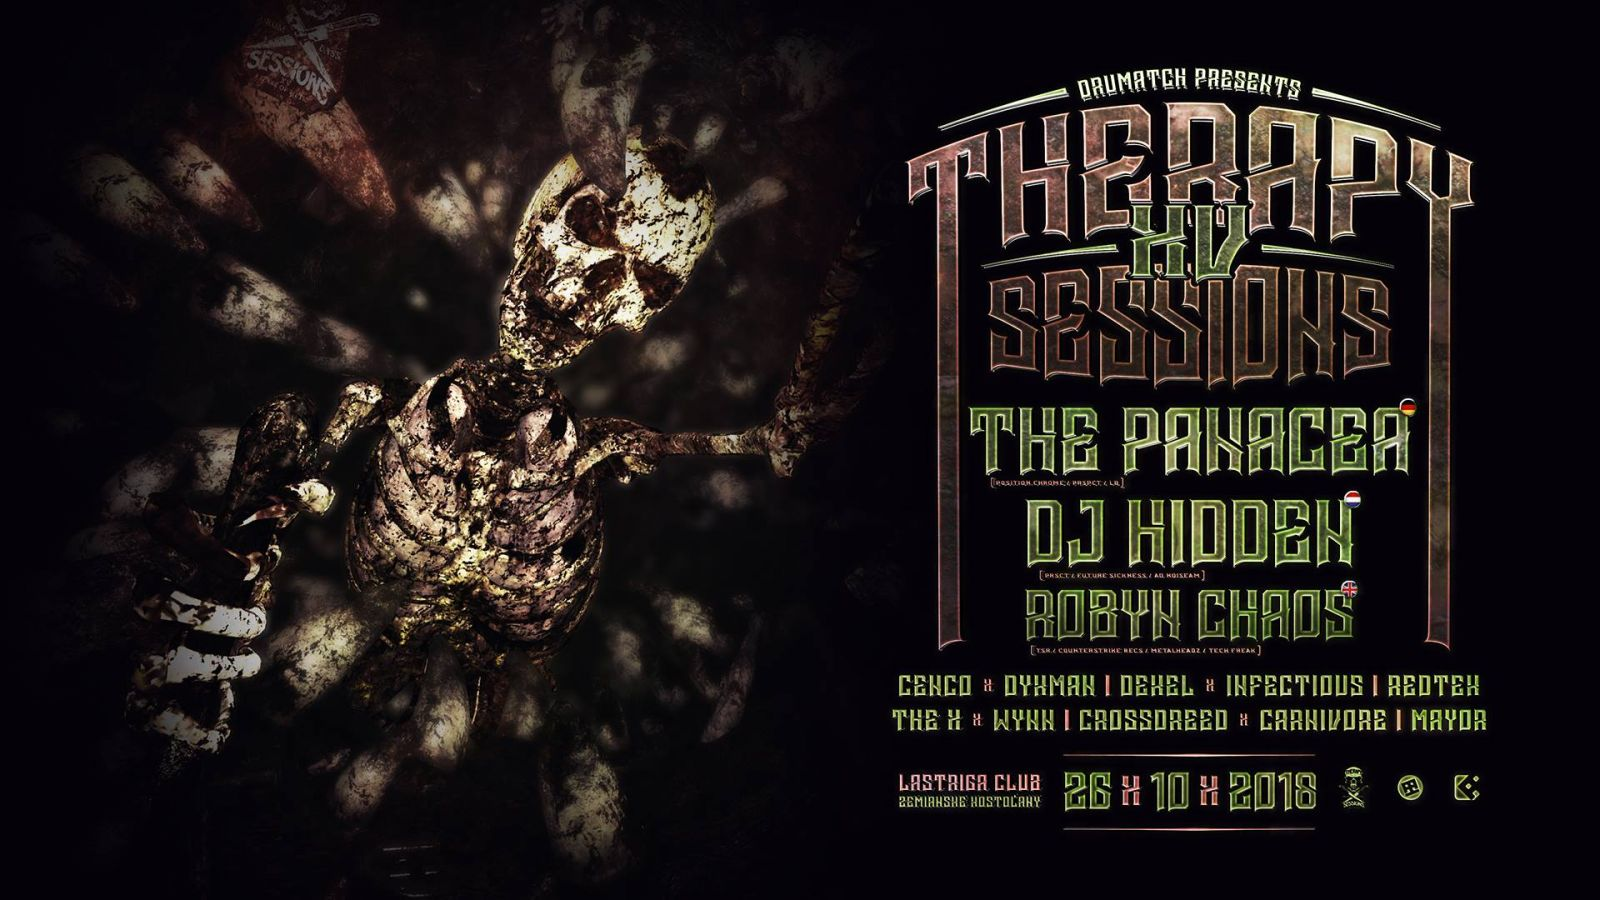 Drumatch presents: Therapy Sessions XV